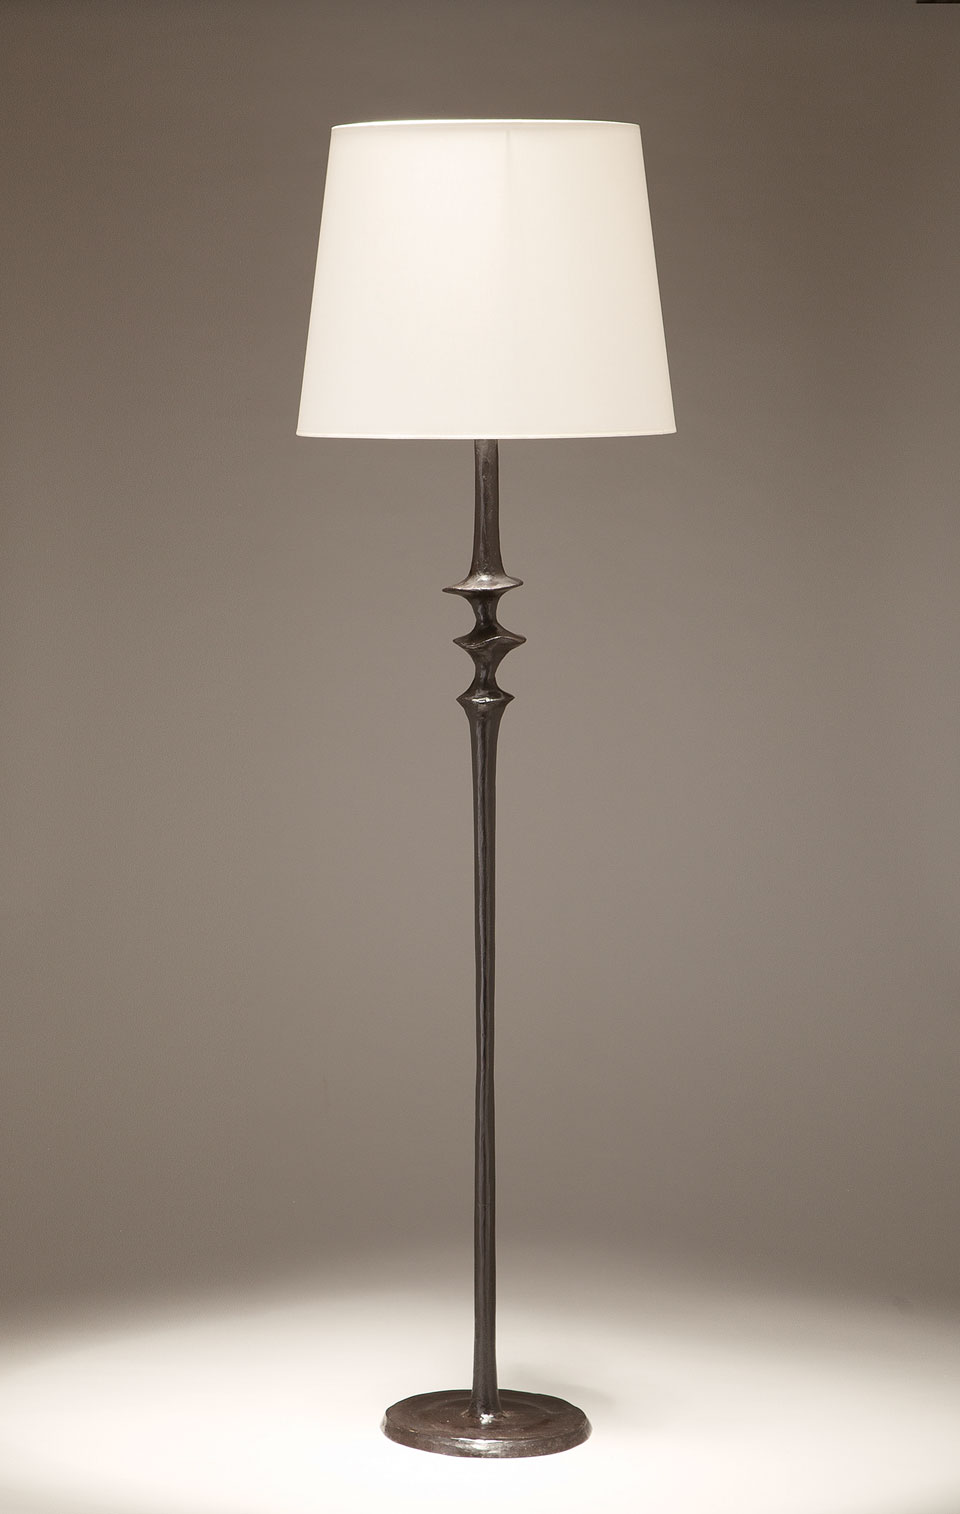 Floor lamp Mancha patinated black solid bronze foot . Objet insolite.